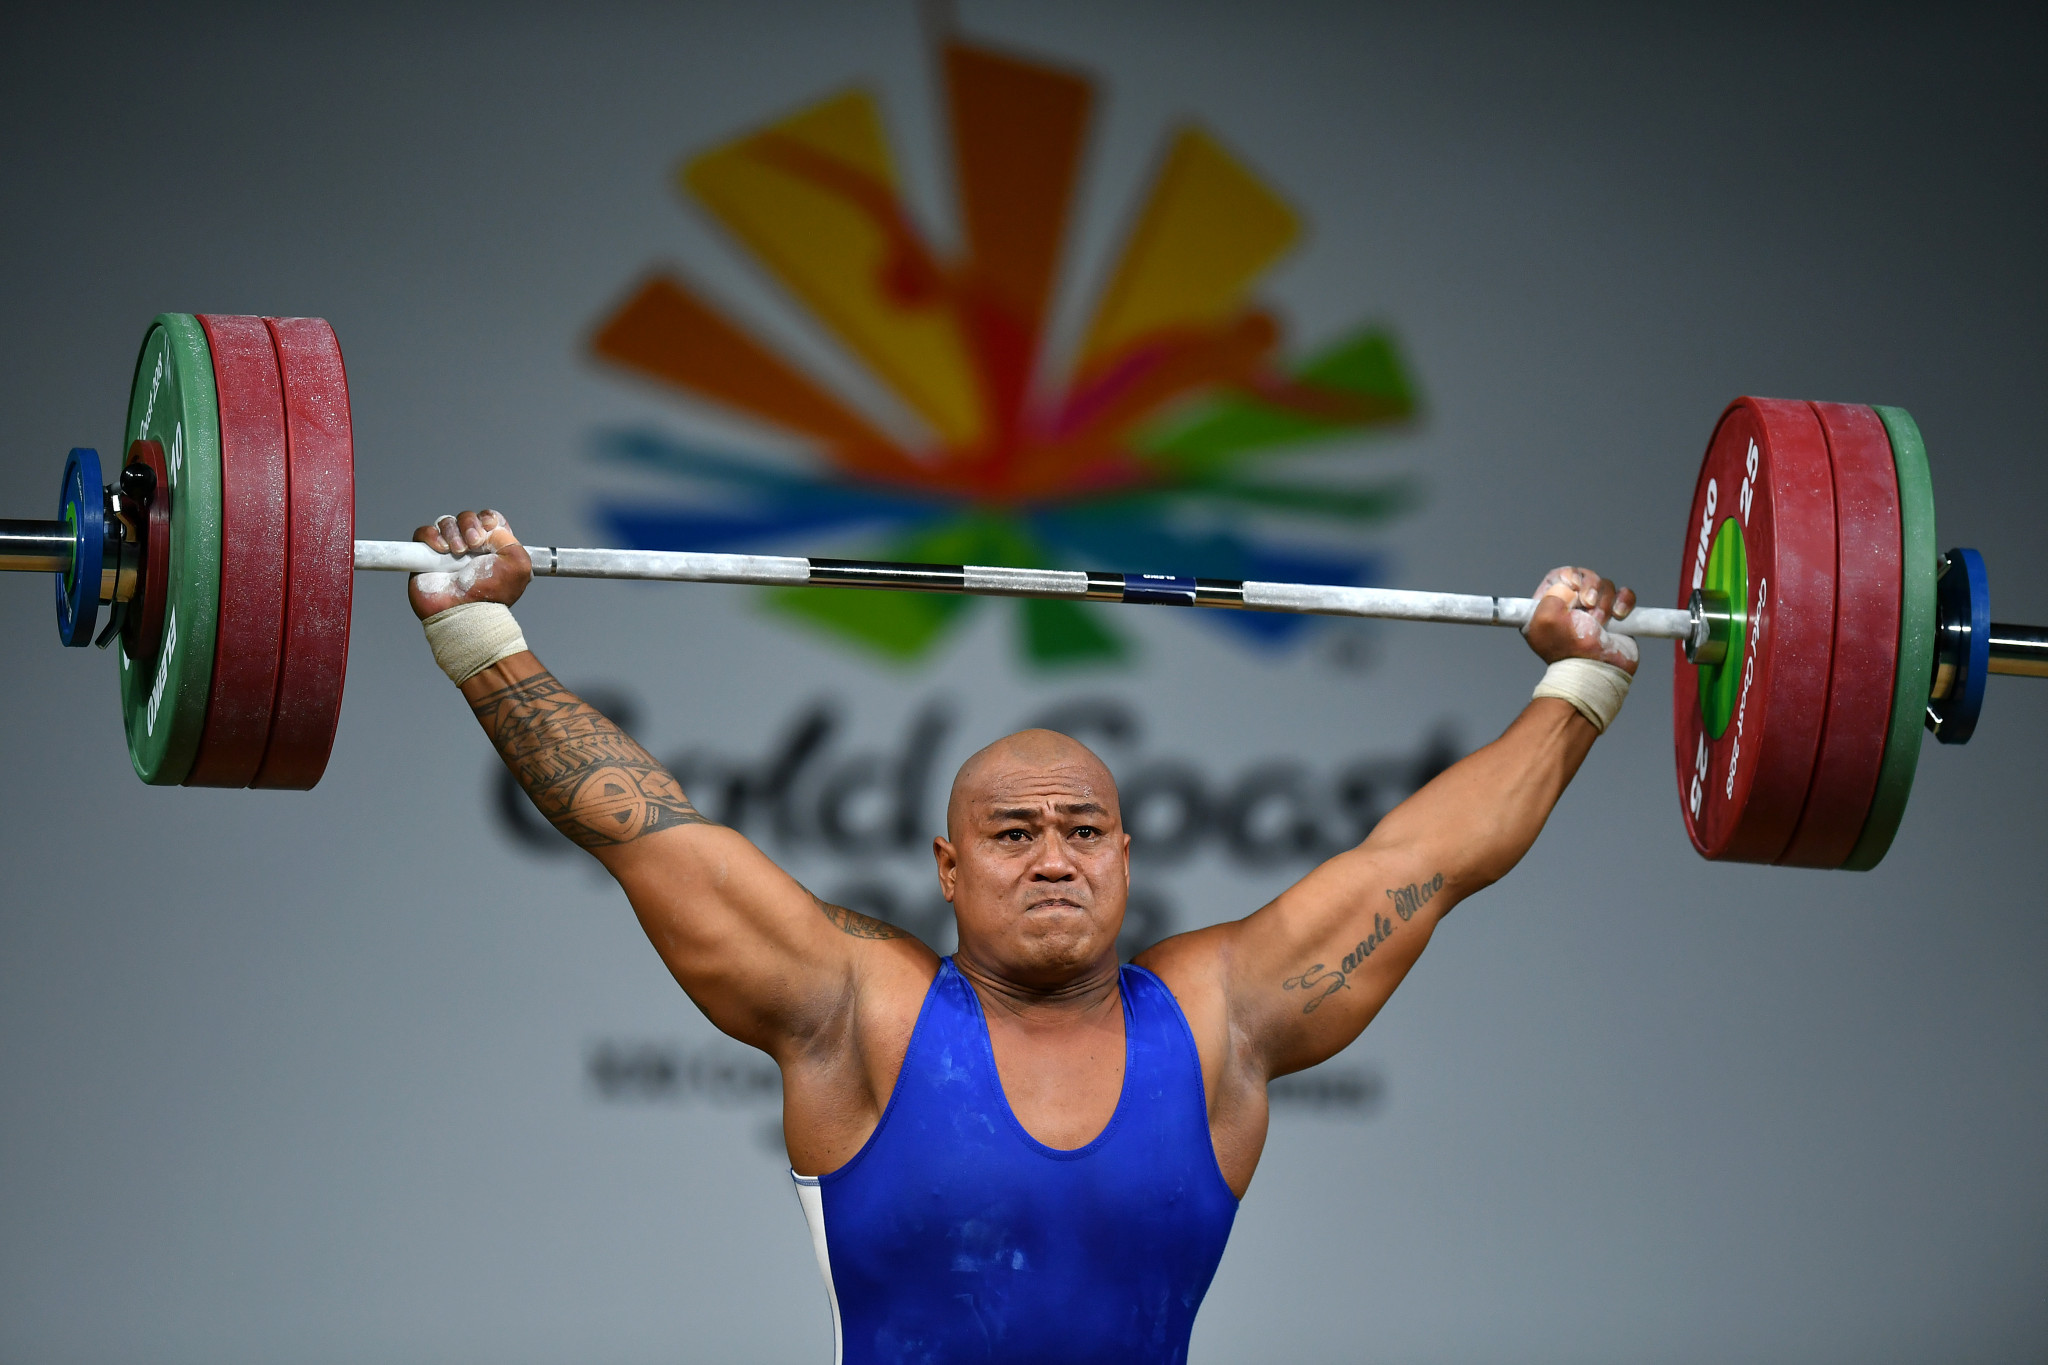 Lifters from Oceania won six of the 16 weightlifting medals on offer at the Gold Coast 2018 Commonwealth Games ©Getty Images